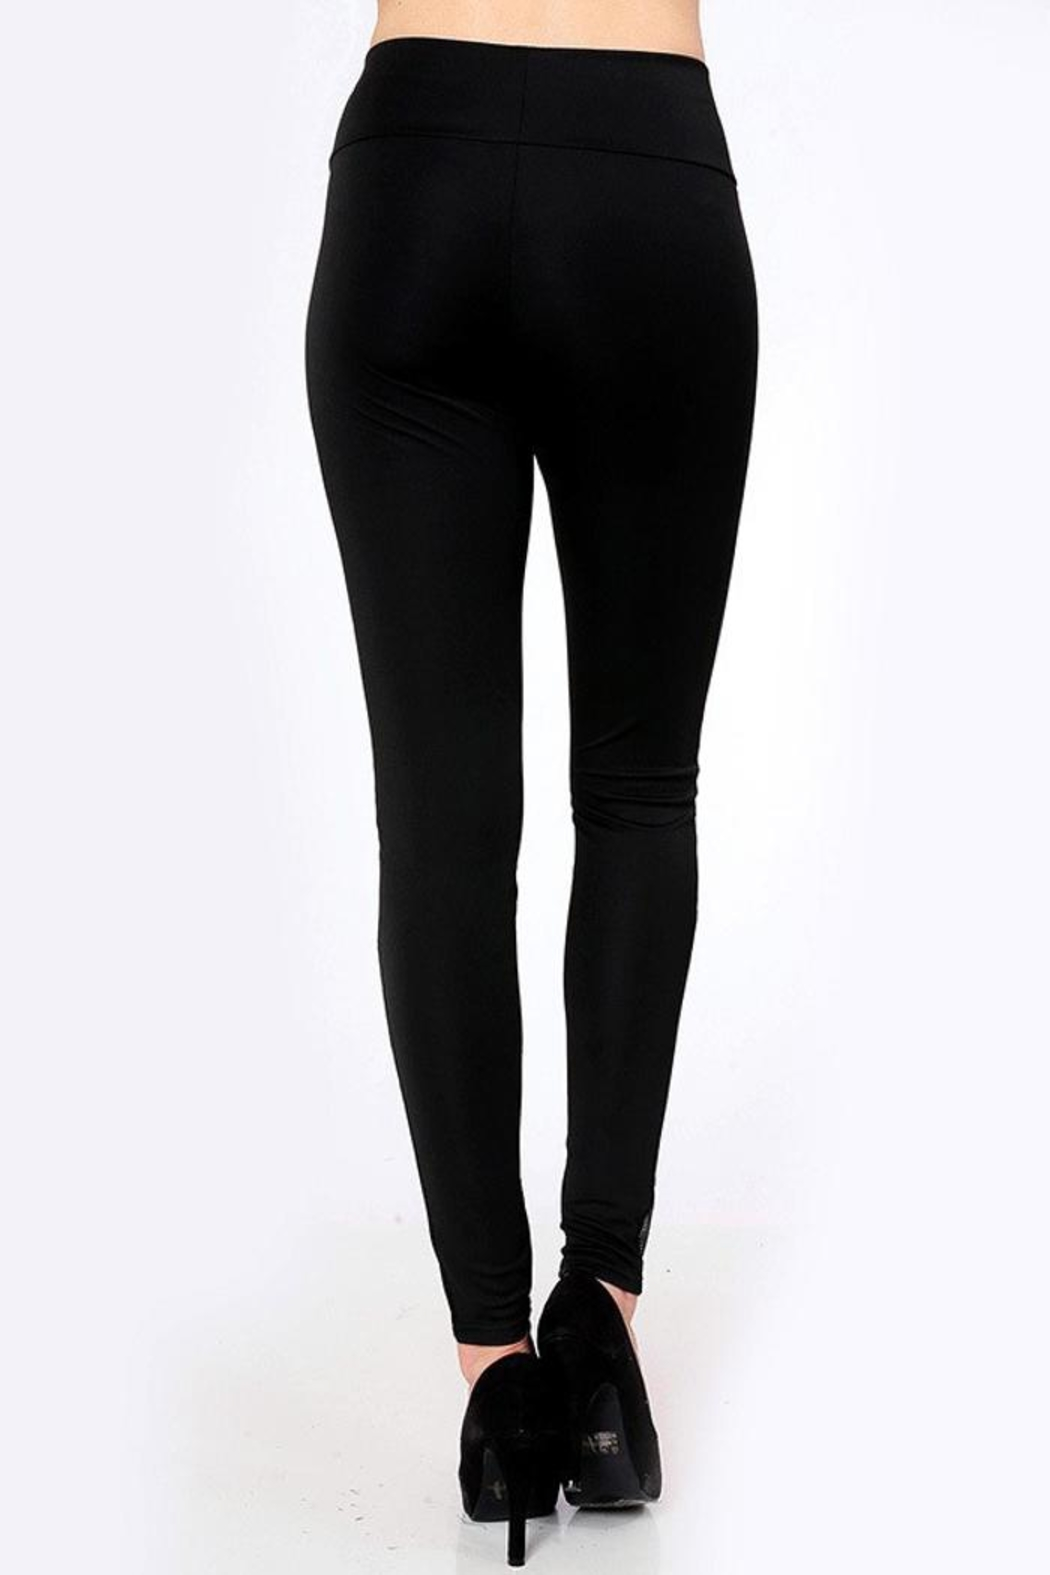 People Outfitter 80's Mesh Leggings - Side Cropped Image